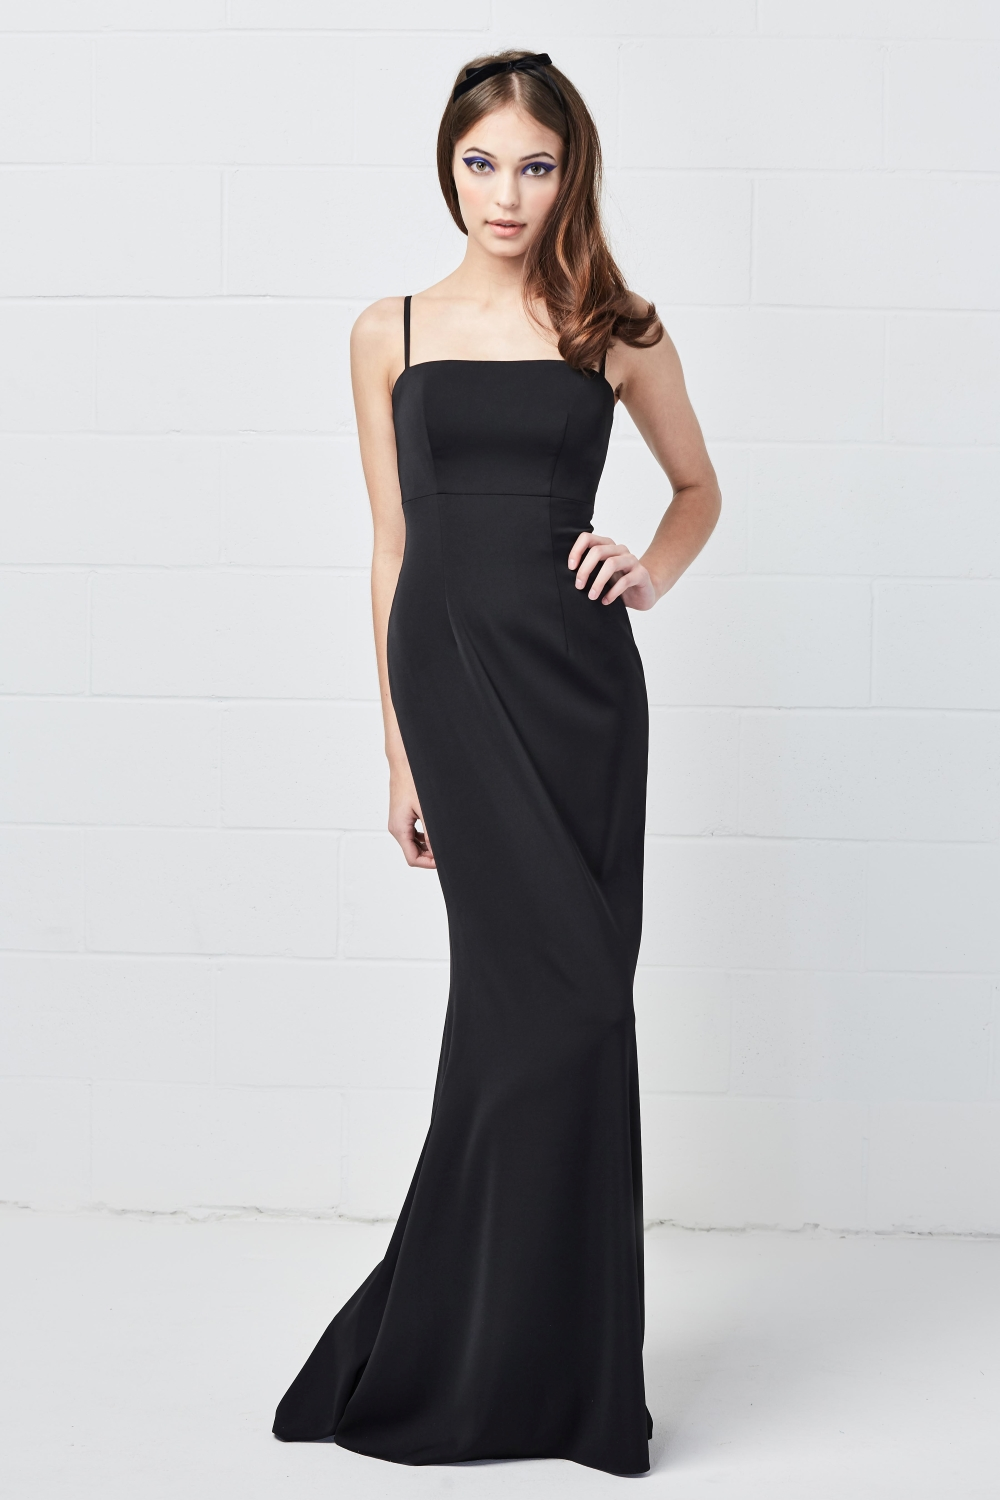 simple-black-bridesmaid-dresses